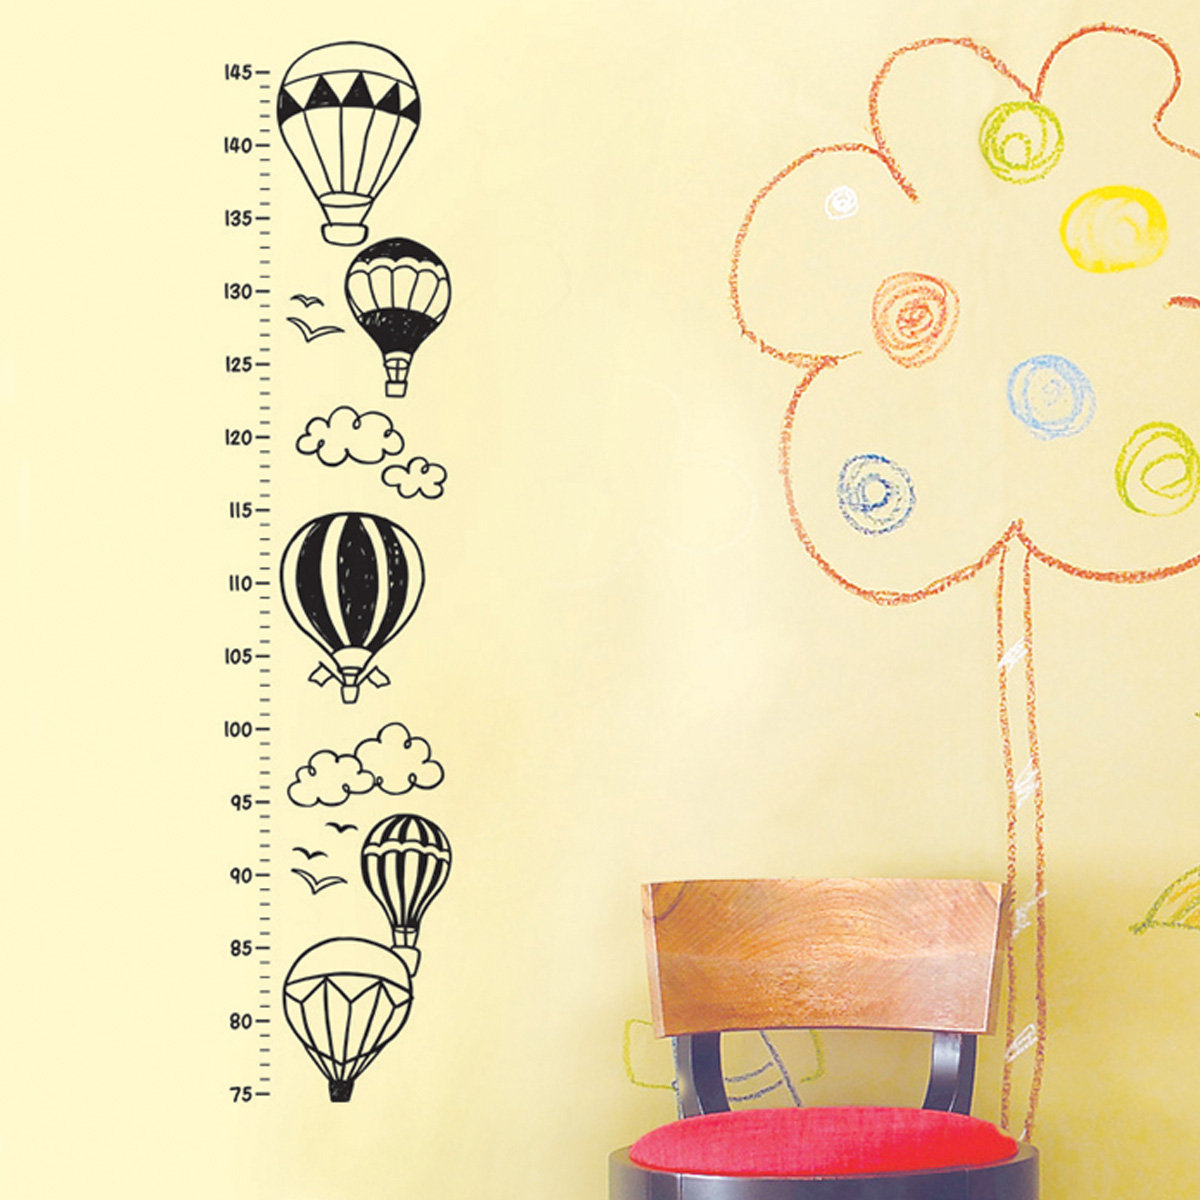 Magicfix Growth Chart Wall Sticker Balloons In Sky 1875cm